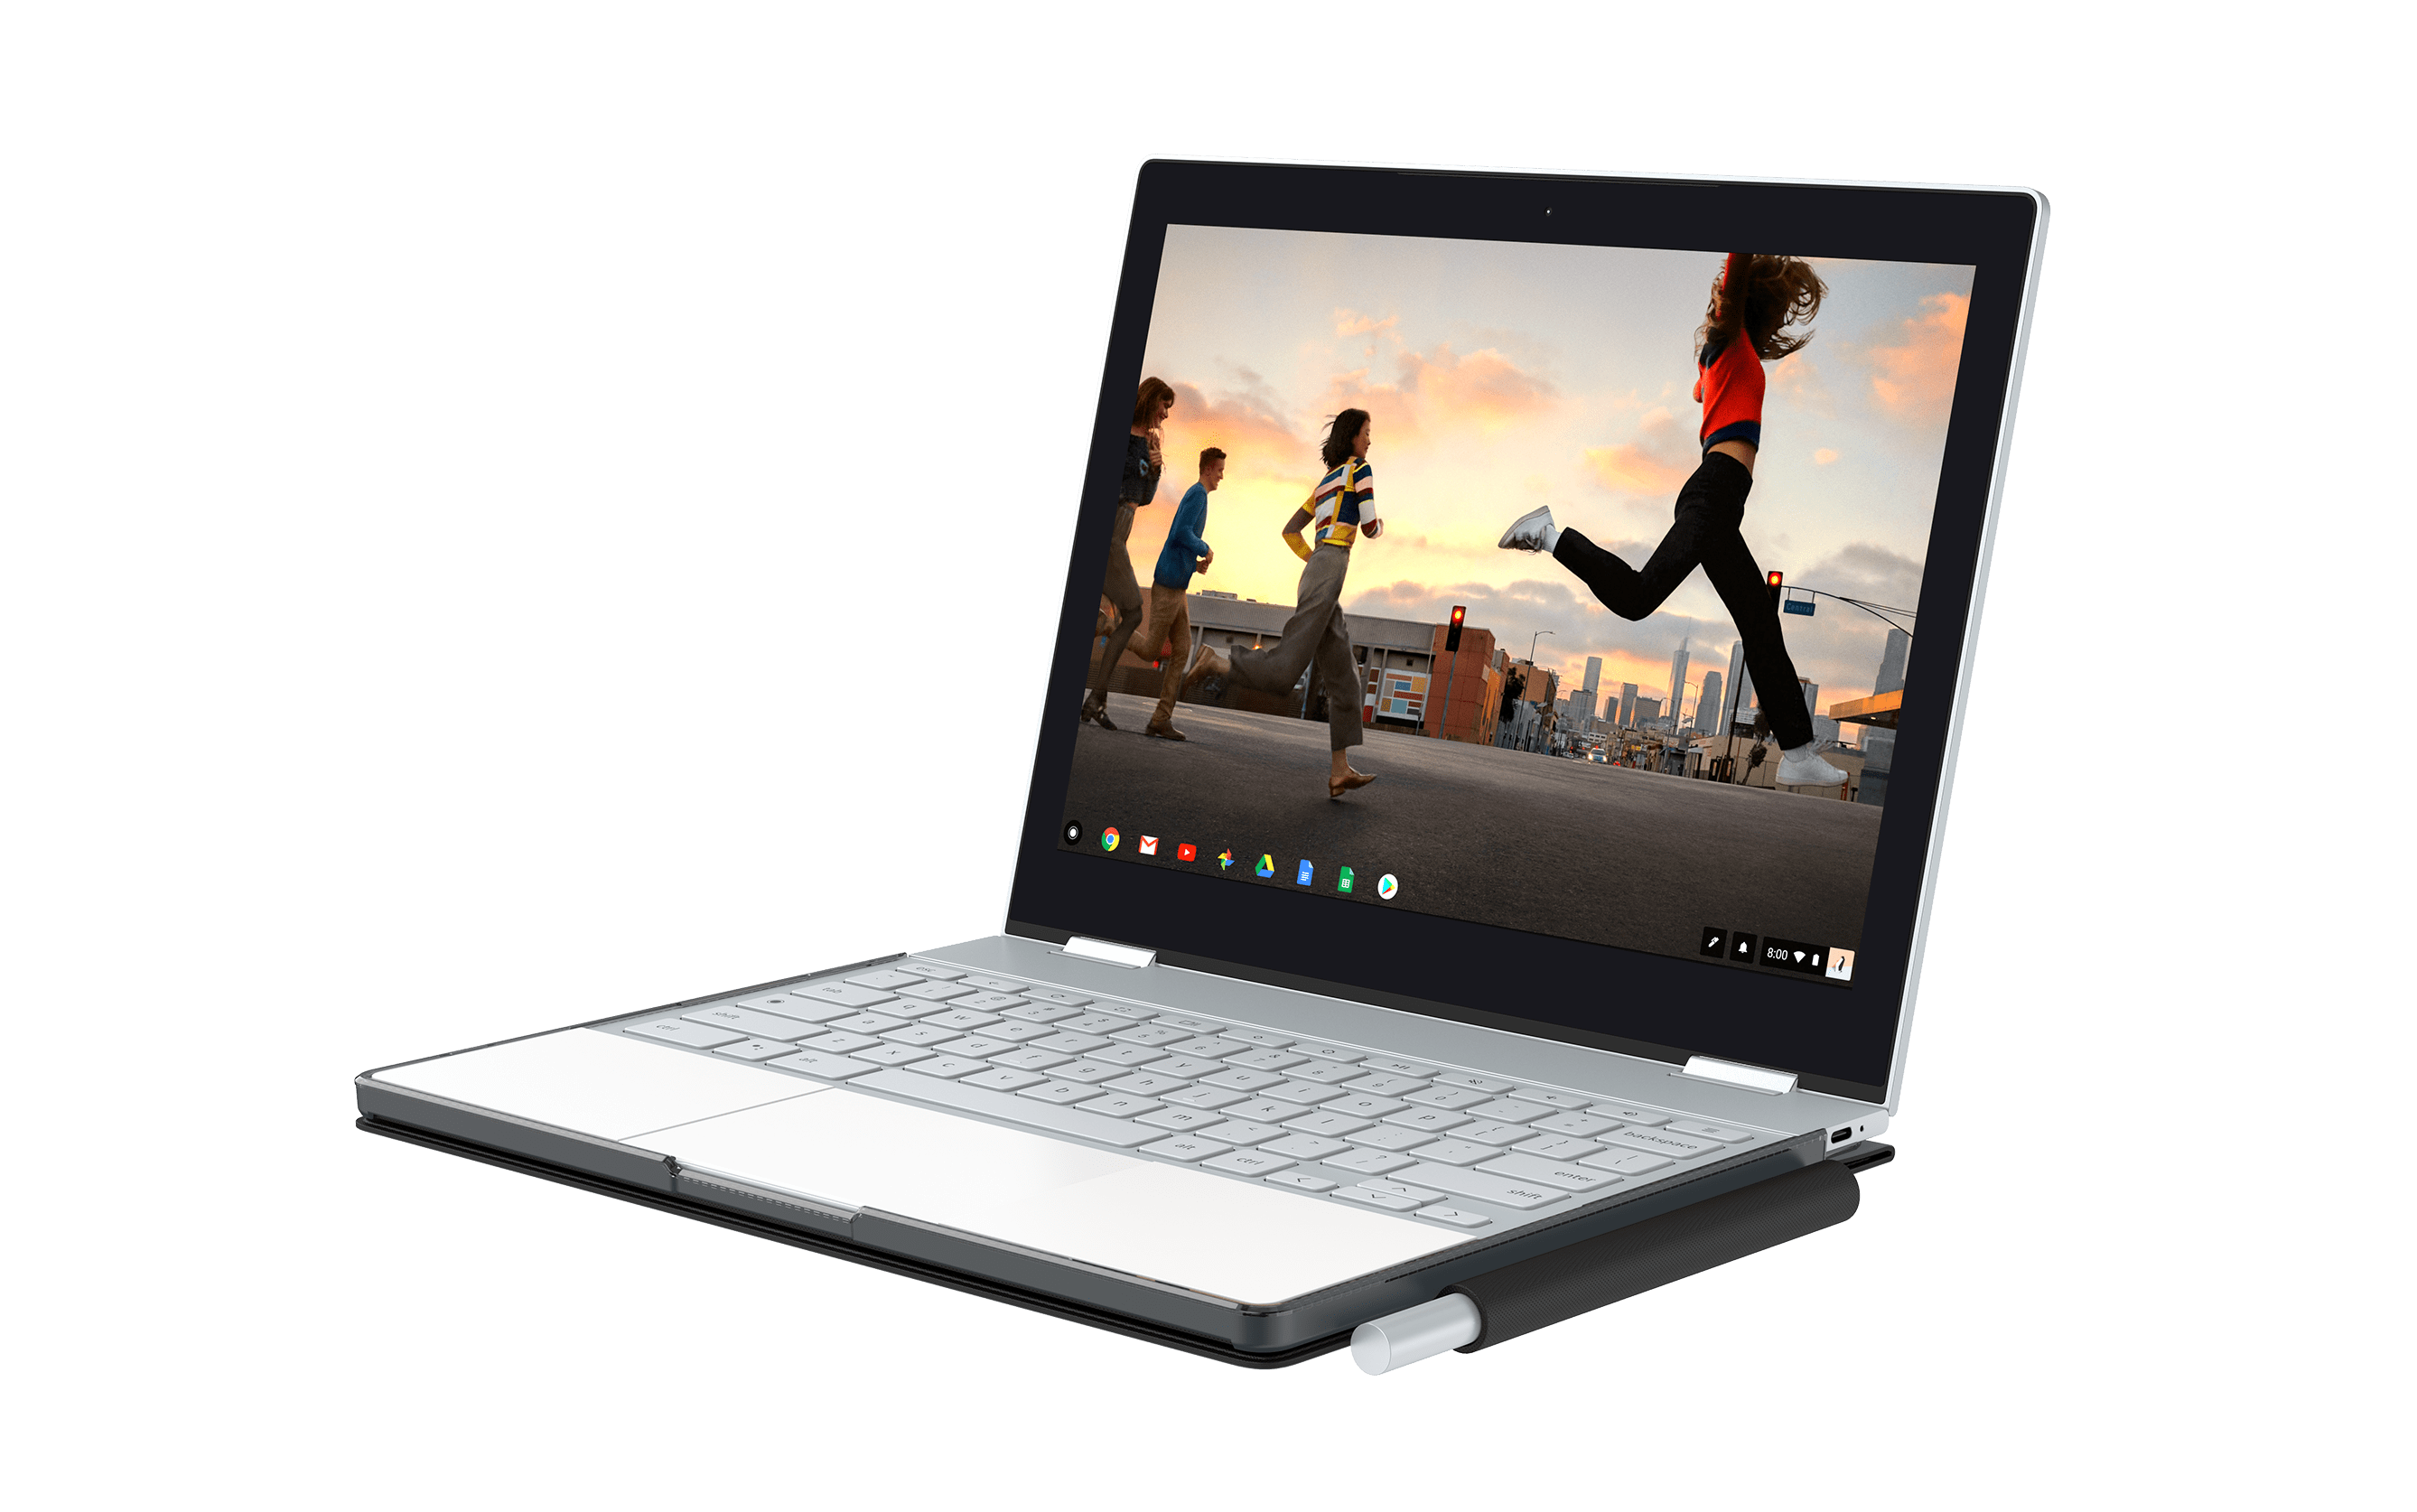 separation shoes d63c8 5784a Tech21 Evo Adapt case for Pixelbook comes to Google Store for $90